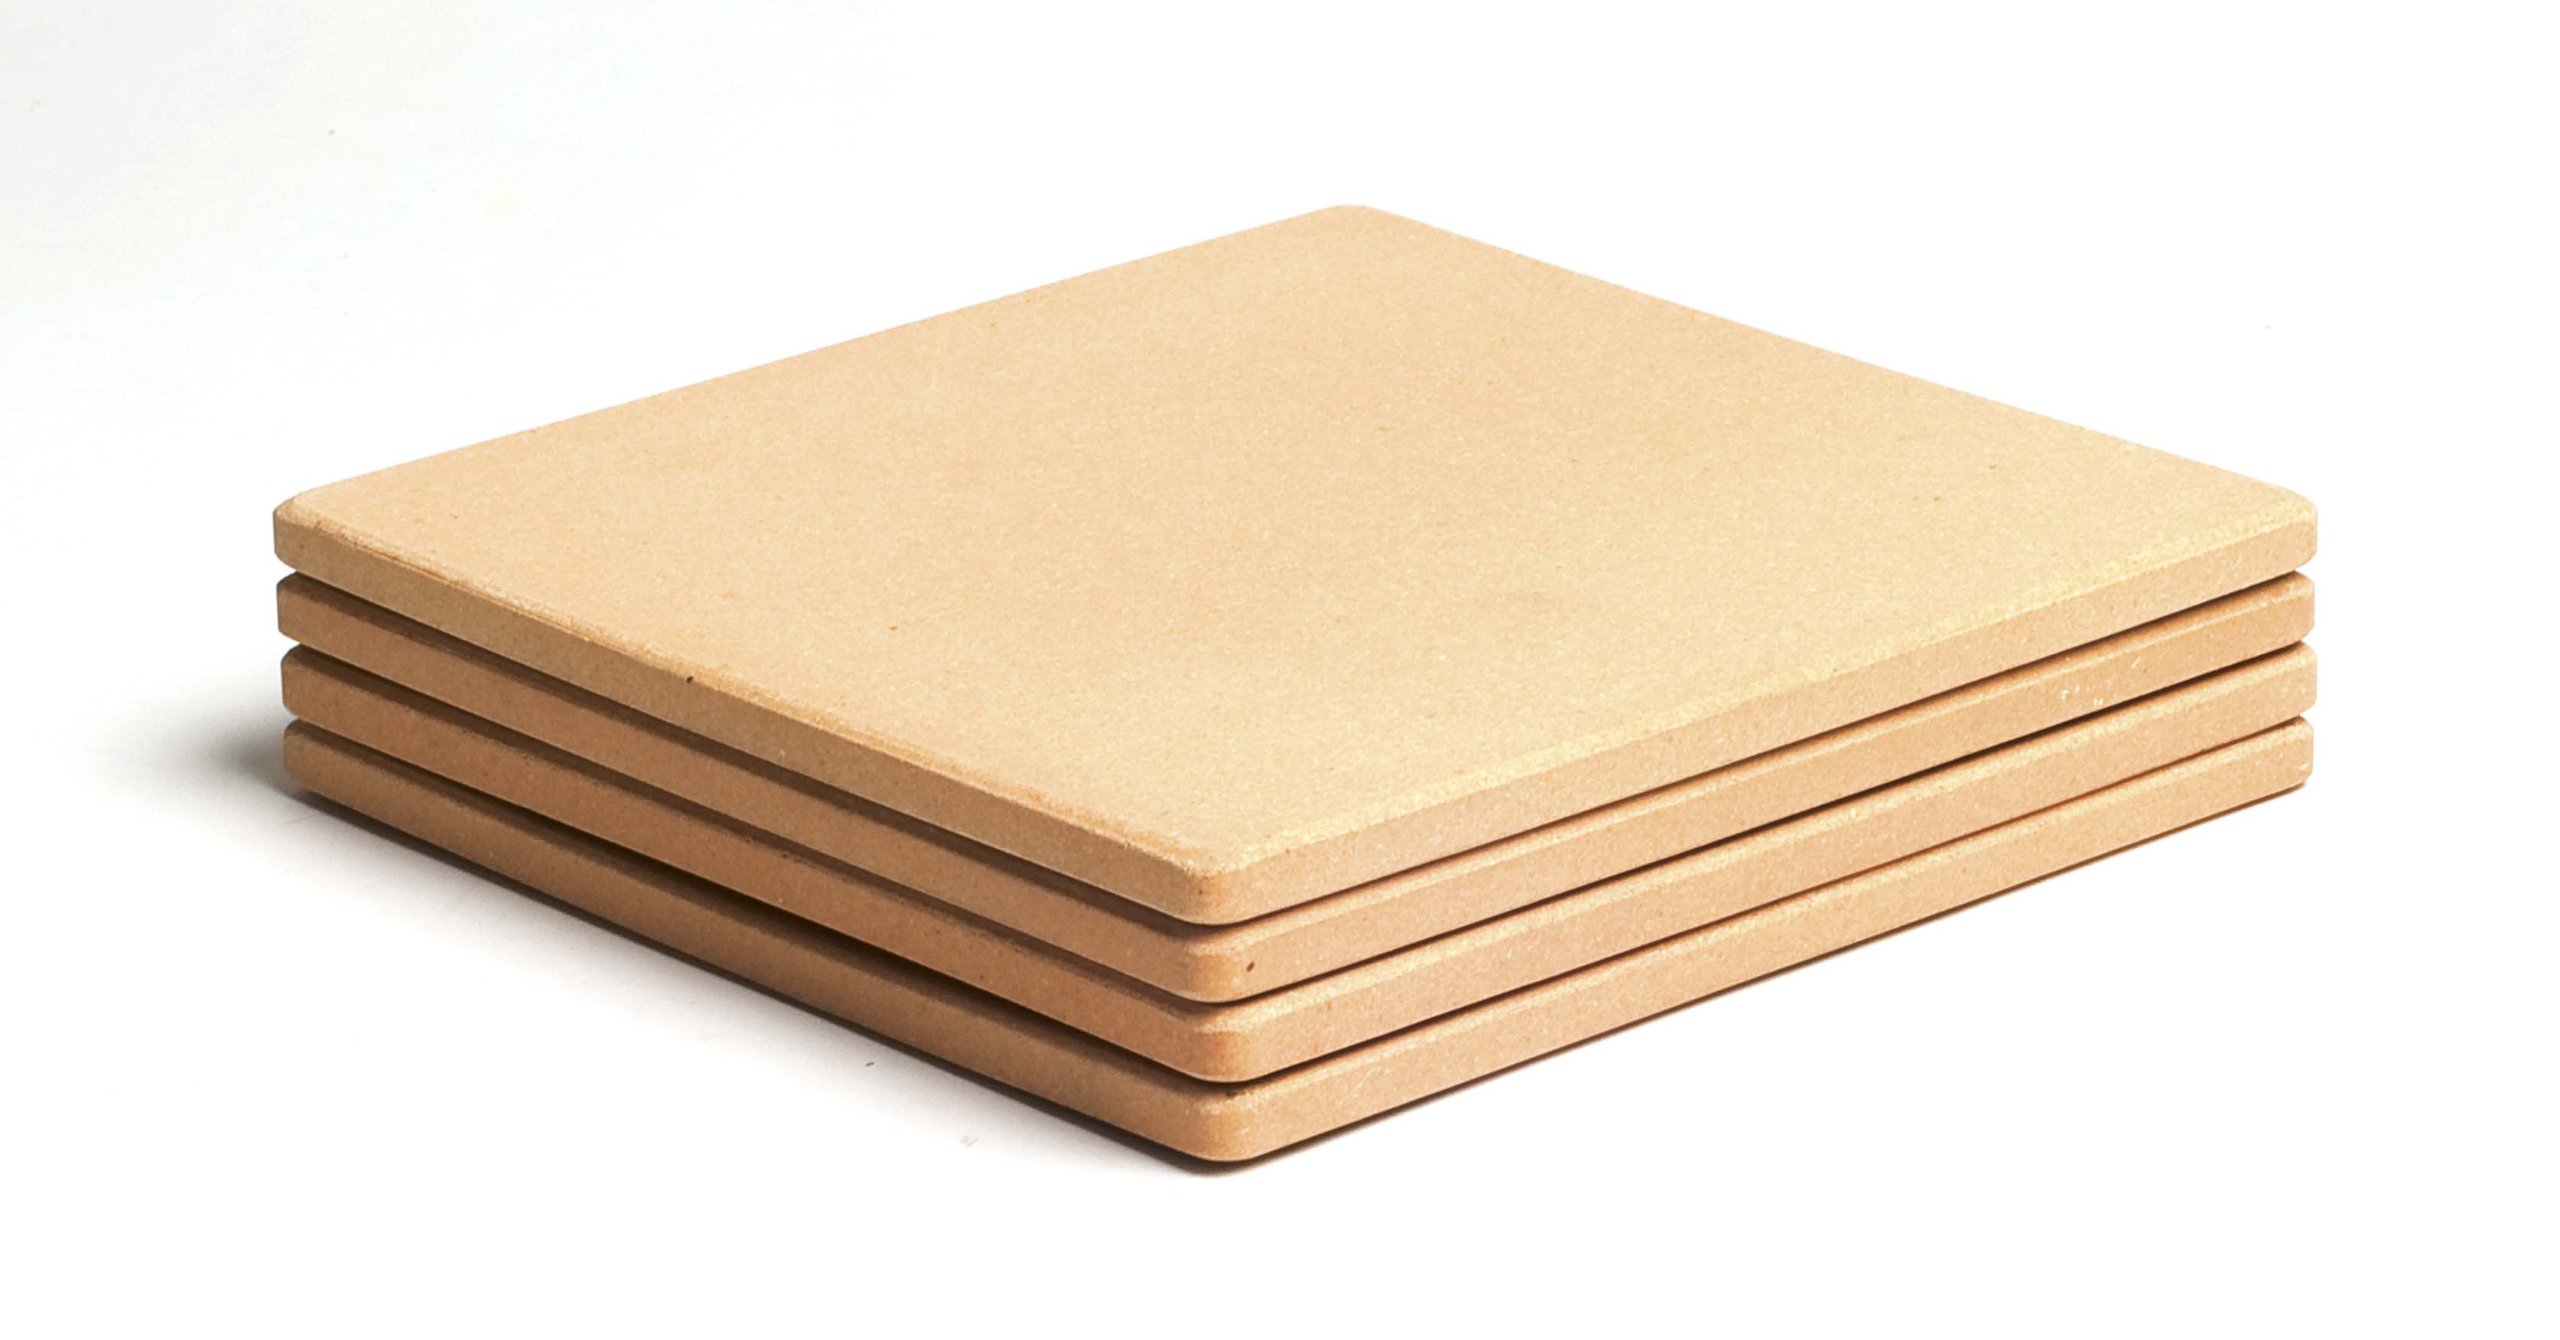 Pizzacraft 7.5'' Square ThermaBond Mini Baking/Pizza Stones, Set of 4 by Pizzacraft